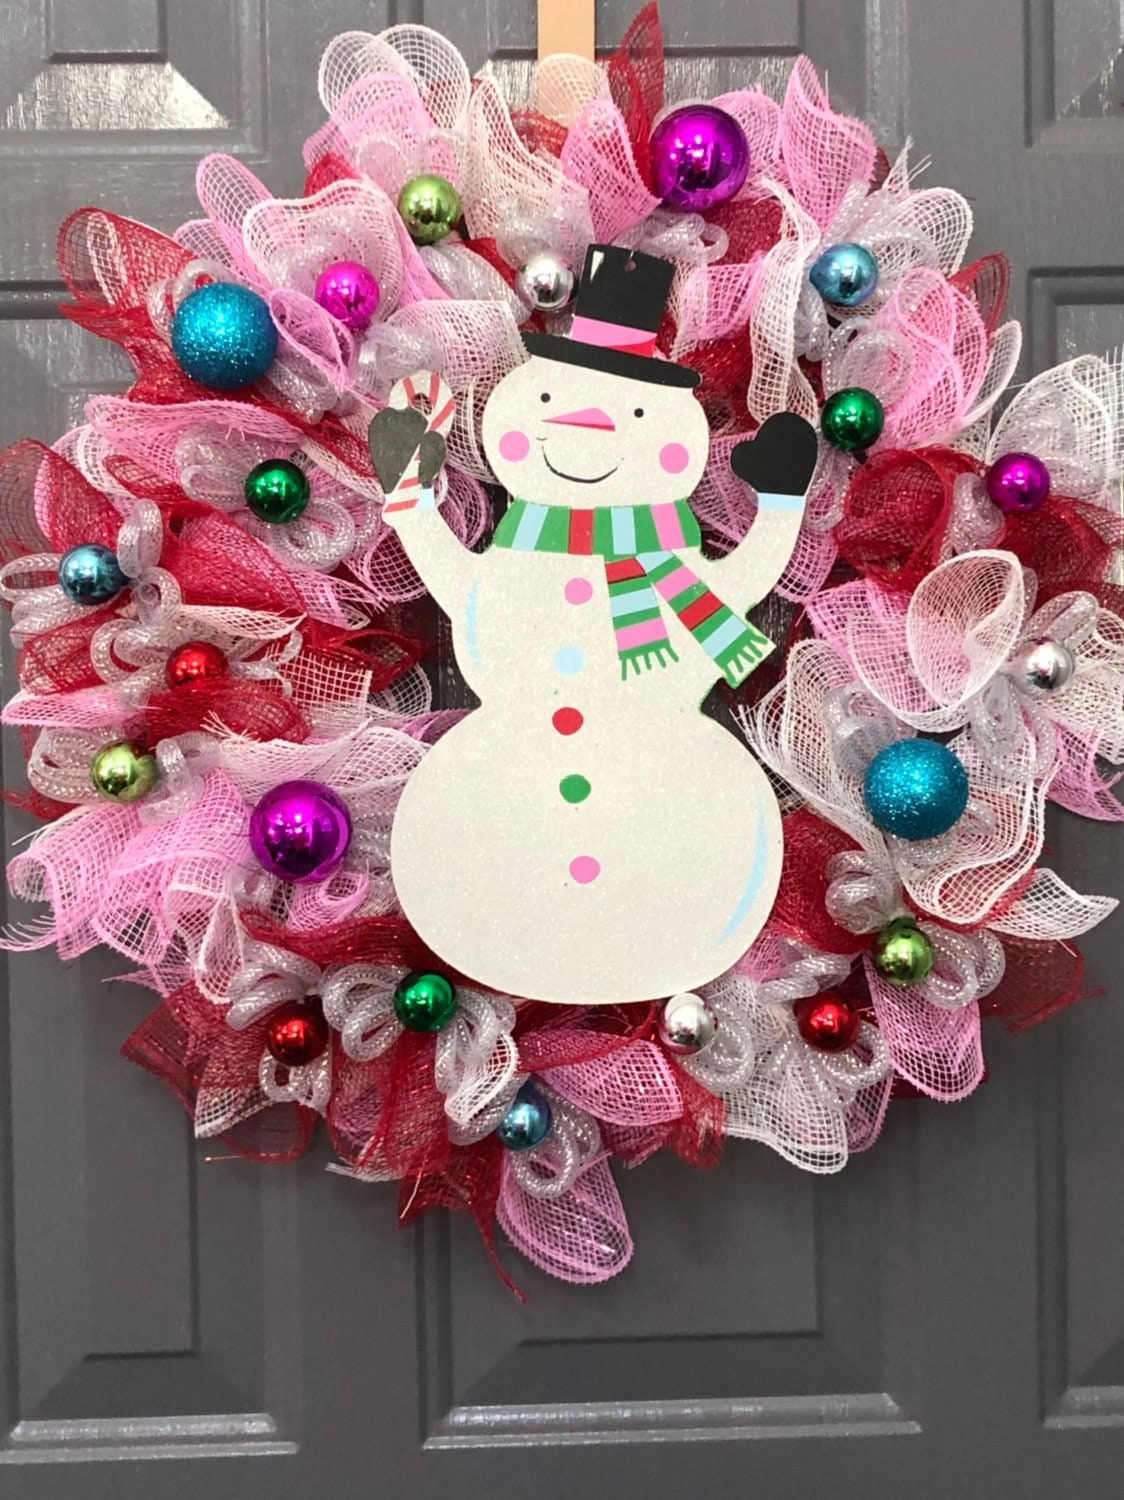 Snowman Wreath 14 Wire Wreath Form Red Pink And White Deco Mesh Snowman Sign Red Blue Silver Green Pink Ornaments Winter